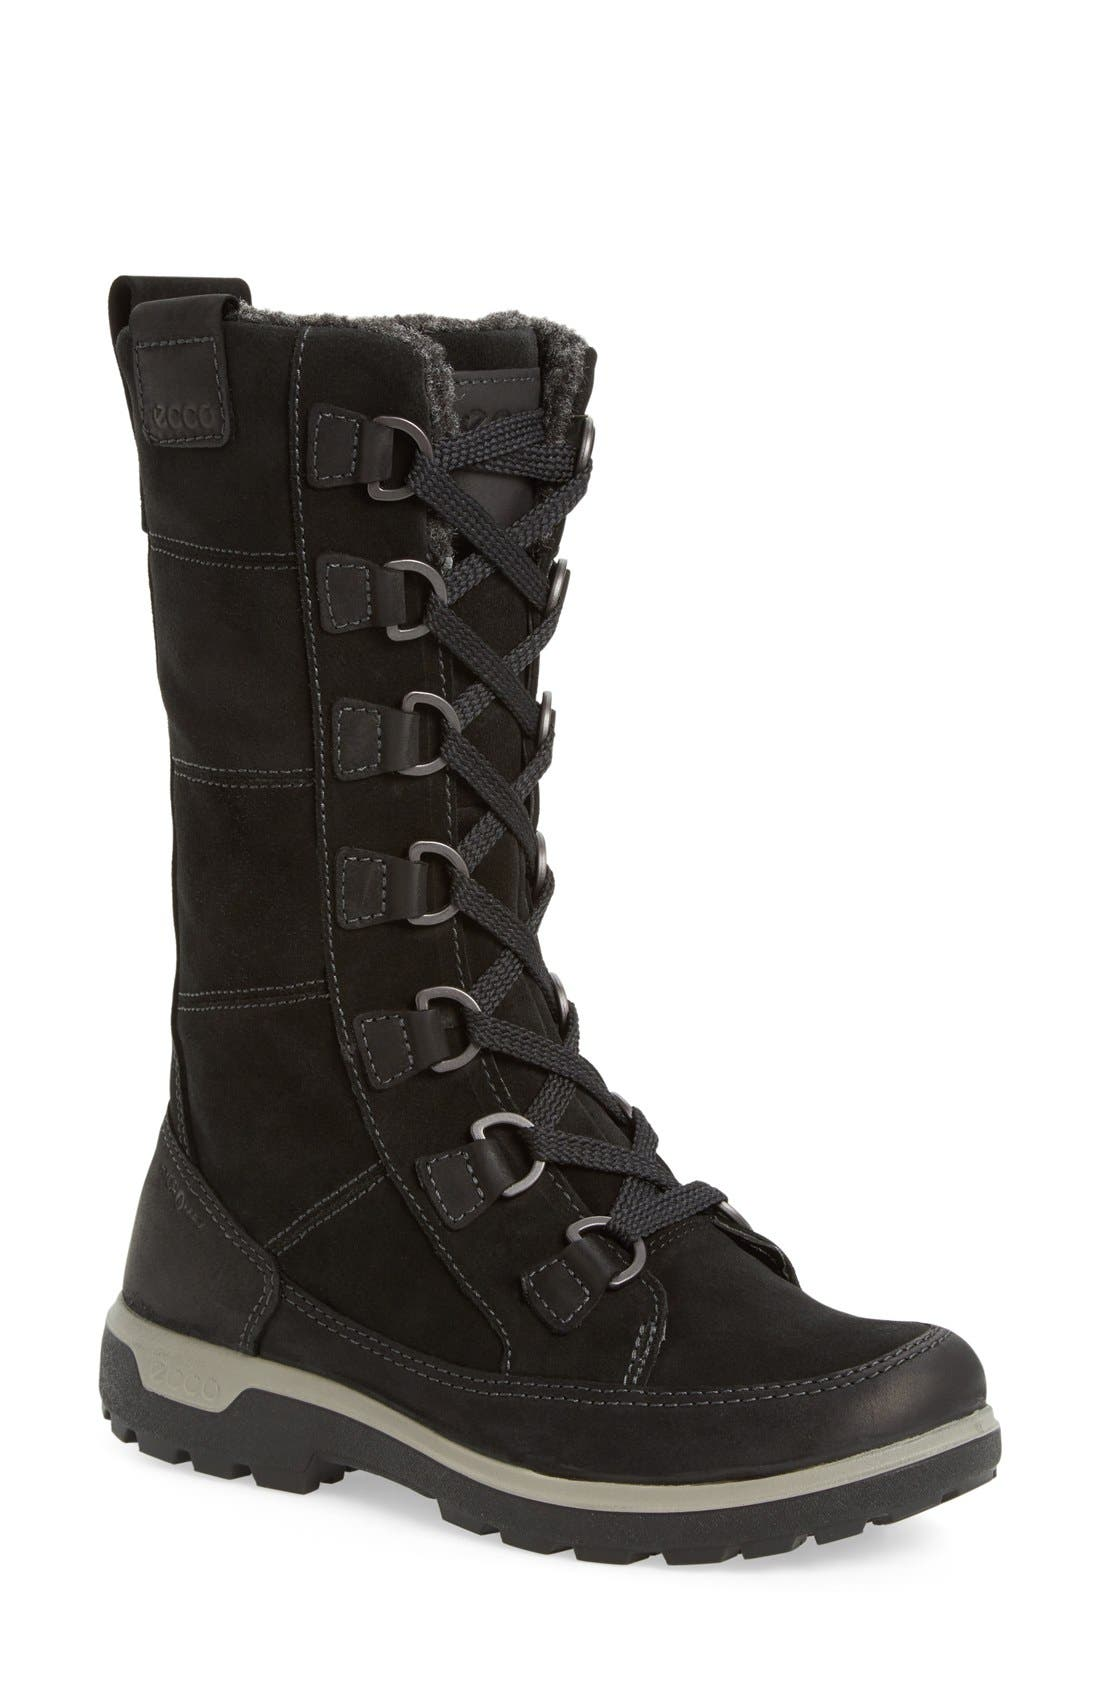 'Gora' Gore-Tex<sup>®</sup> Waterproof Lace-Up Boot,                             Main thumbnail 1, color,                             Black Oiled Nubuck Leather